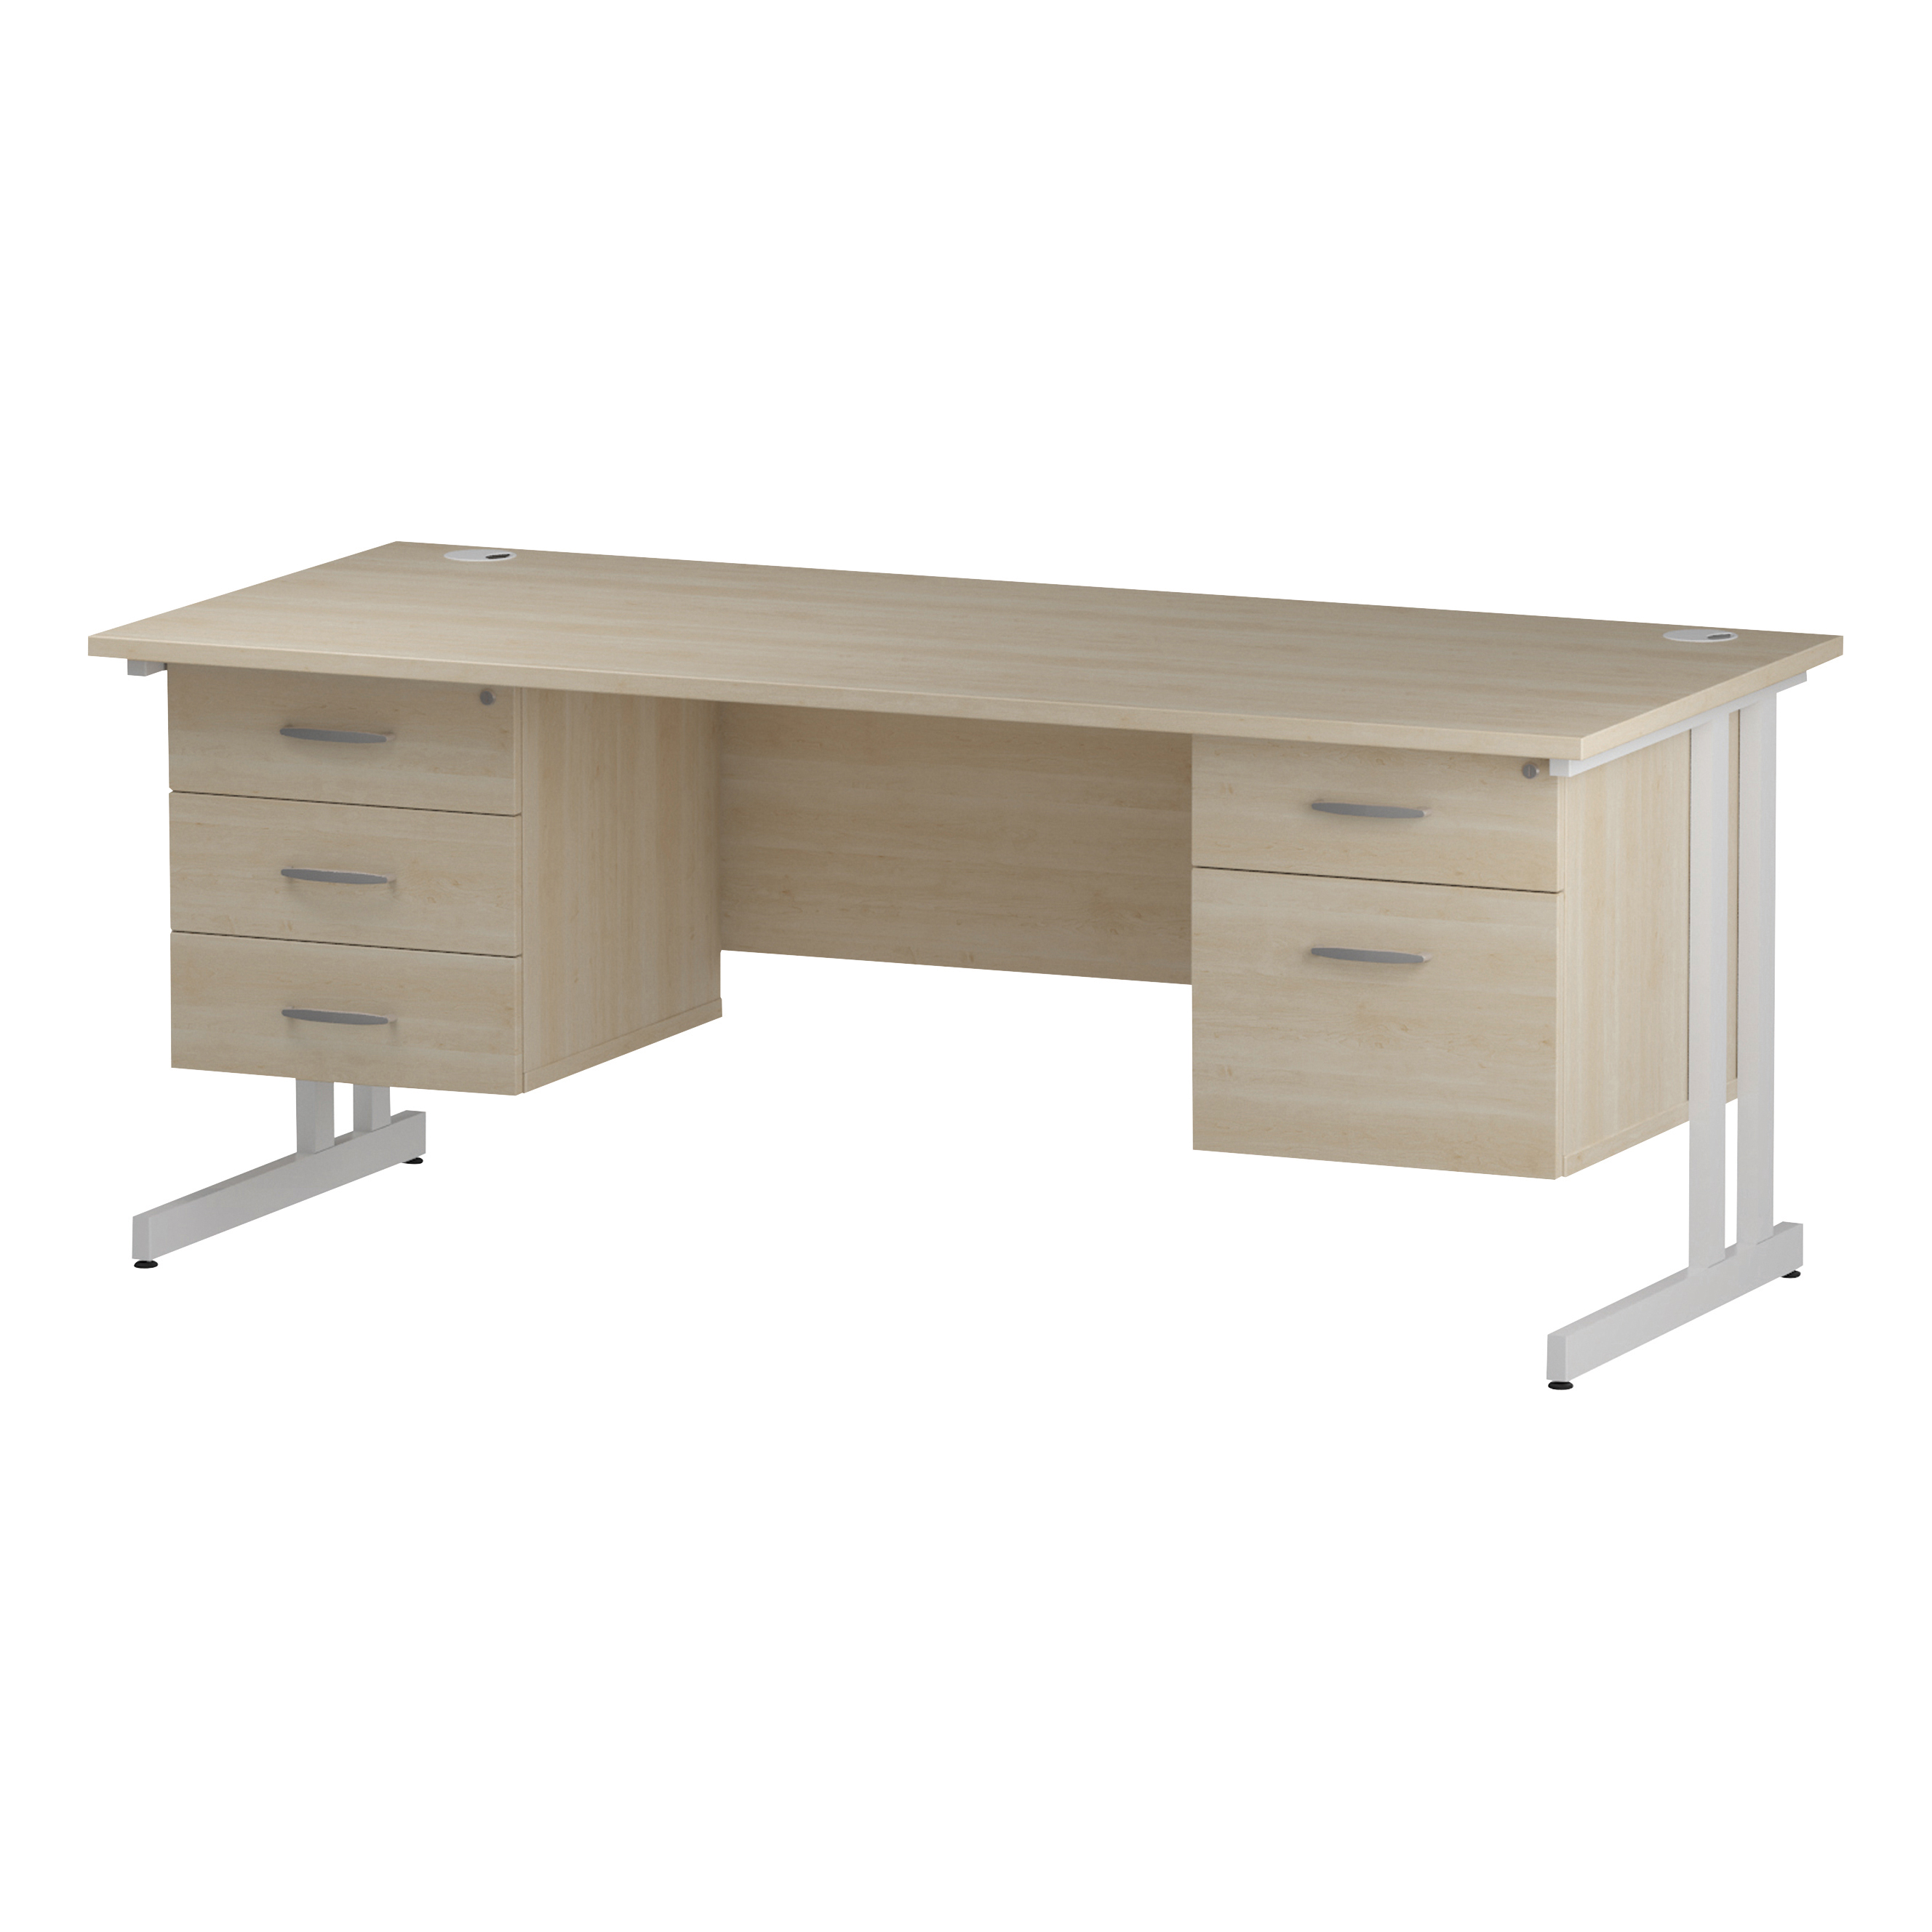 Trexus Rectangular Desk White Cantilever Leg 1800x800mm Double Fixed Ped 2&3 Drawers Maple Ref I002470